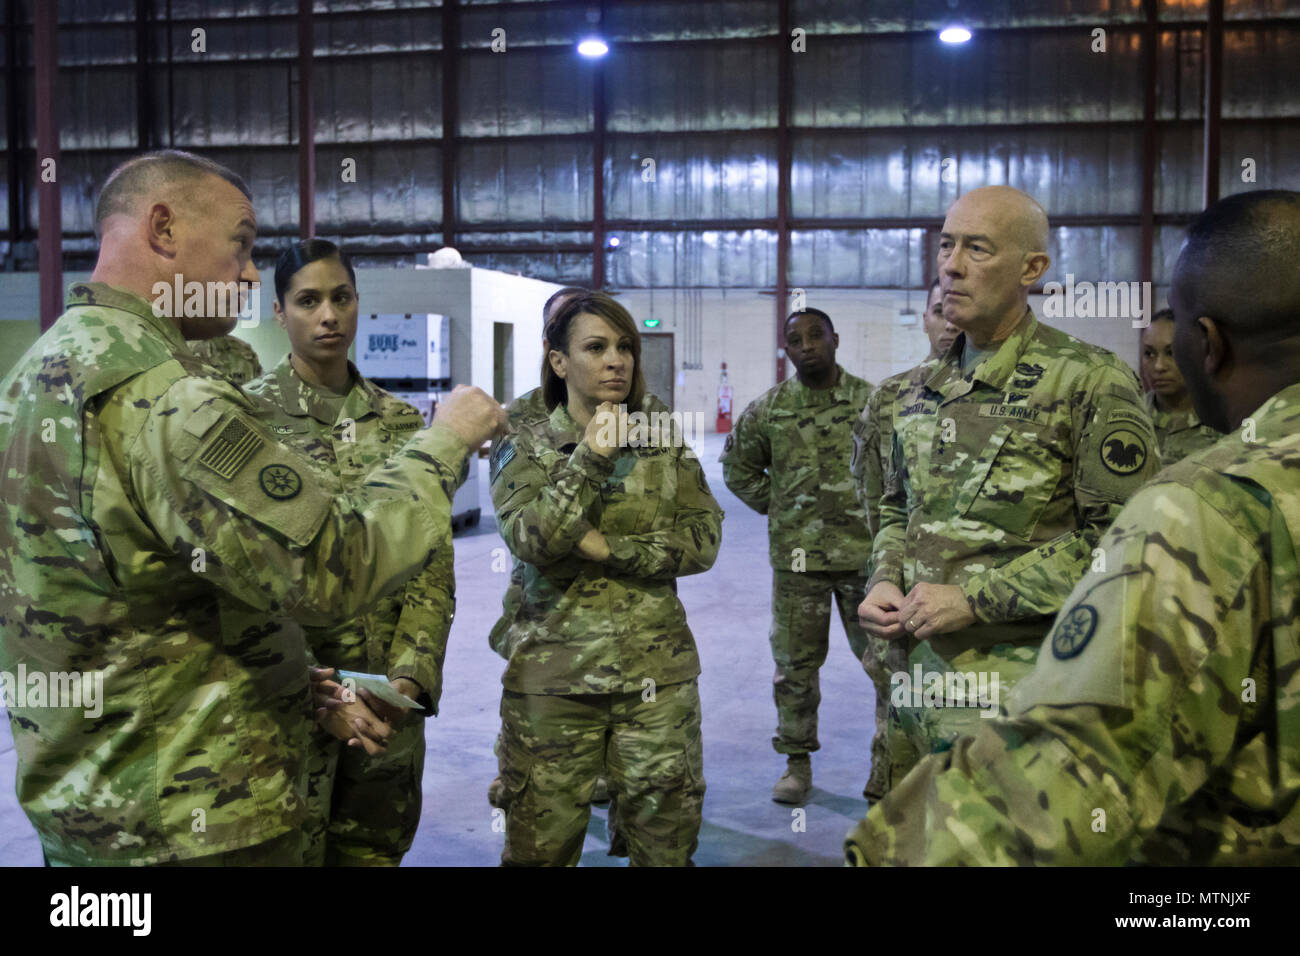 Brig. Gen. Robert D. Harter, commanding general of the 316th Sustainment Command (Expeditionary), (left), explains the process of how equipment is moved through out the U.S. Central Command (USCENTCOM) Area of Responsibility (AOR) to U.S. Army Reserve Commanding General, Lt. Gen. Charles D. Luckey, (right), during a tour the Iraq Train and Equipment Fund (ITEF) warehouse at Camp Arifjan, Kuwait, Jan. 4, 2017. (U.S. Army Photo by Staff Sgt. Dalton Smith) - Stock Image